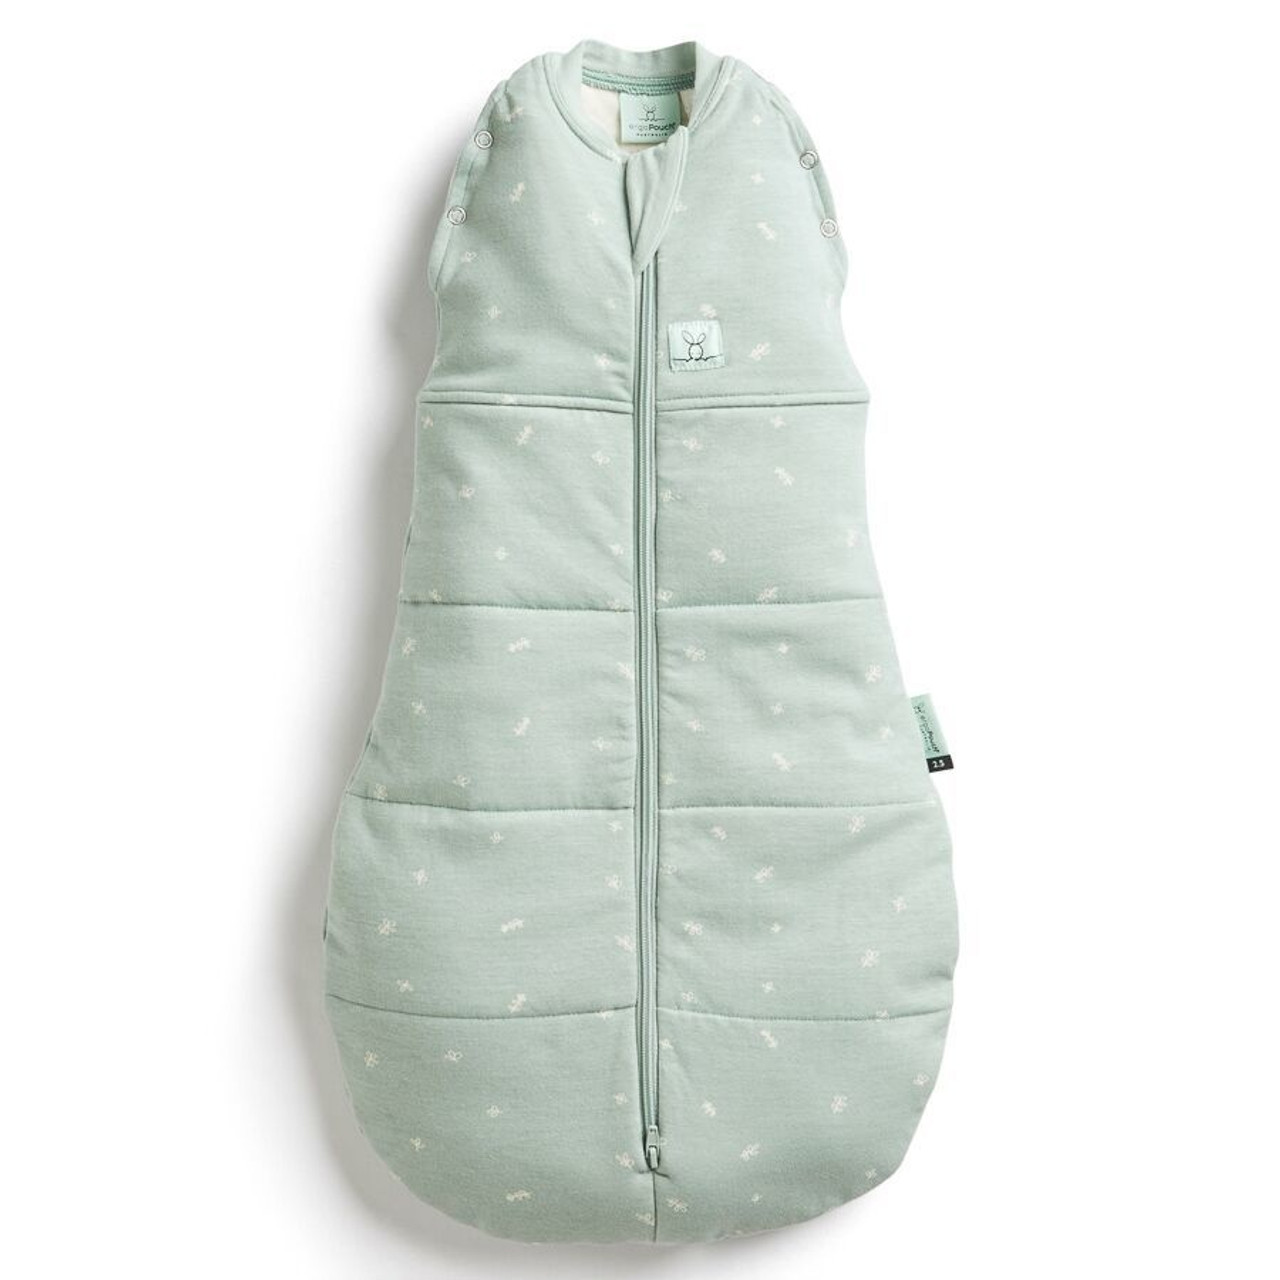 Ergopouch Cocoon Swaddle Bag 2.5 Tog 0-3 Months SAGE at Baby Barn Discounts